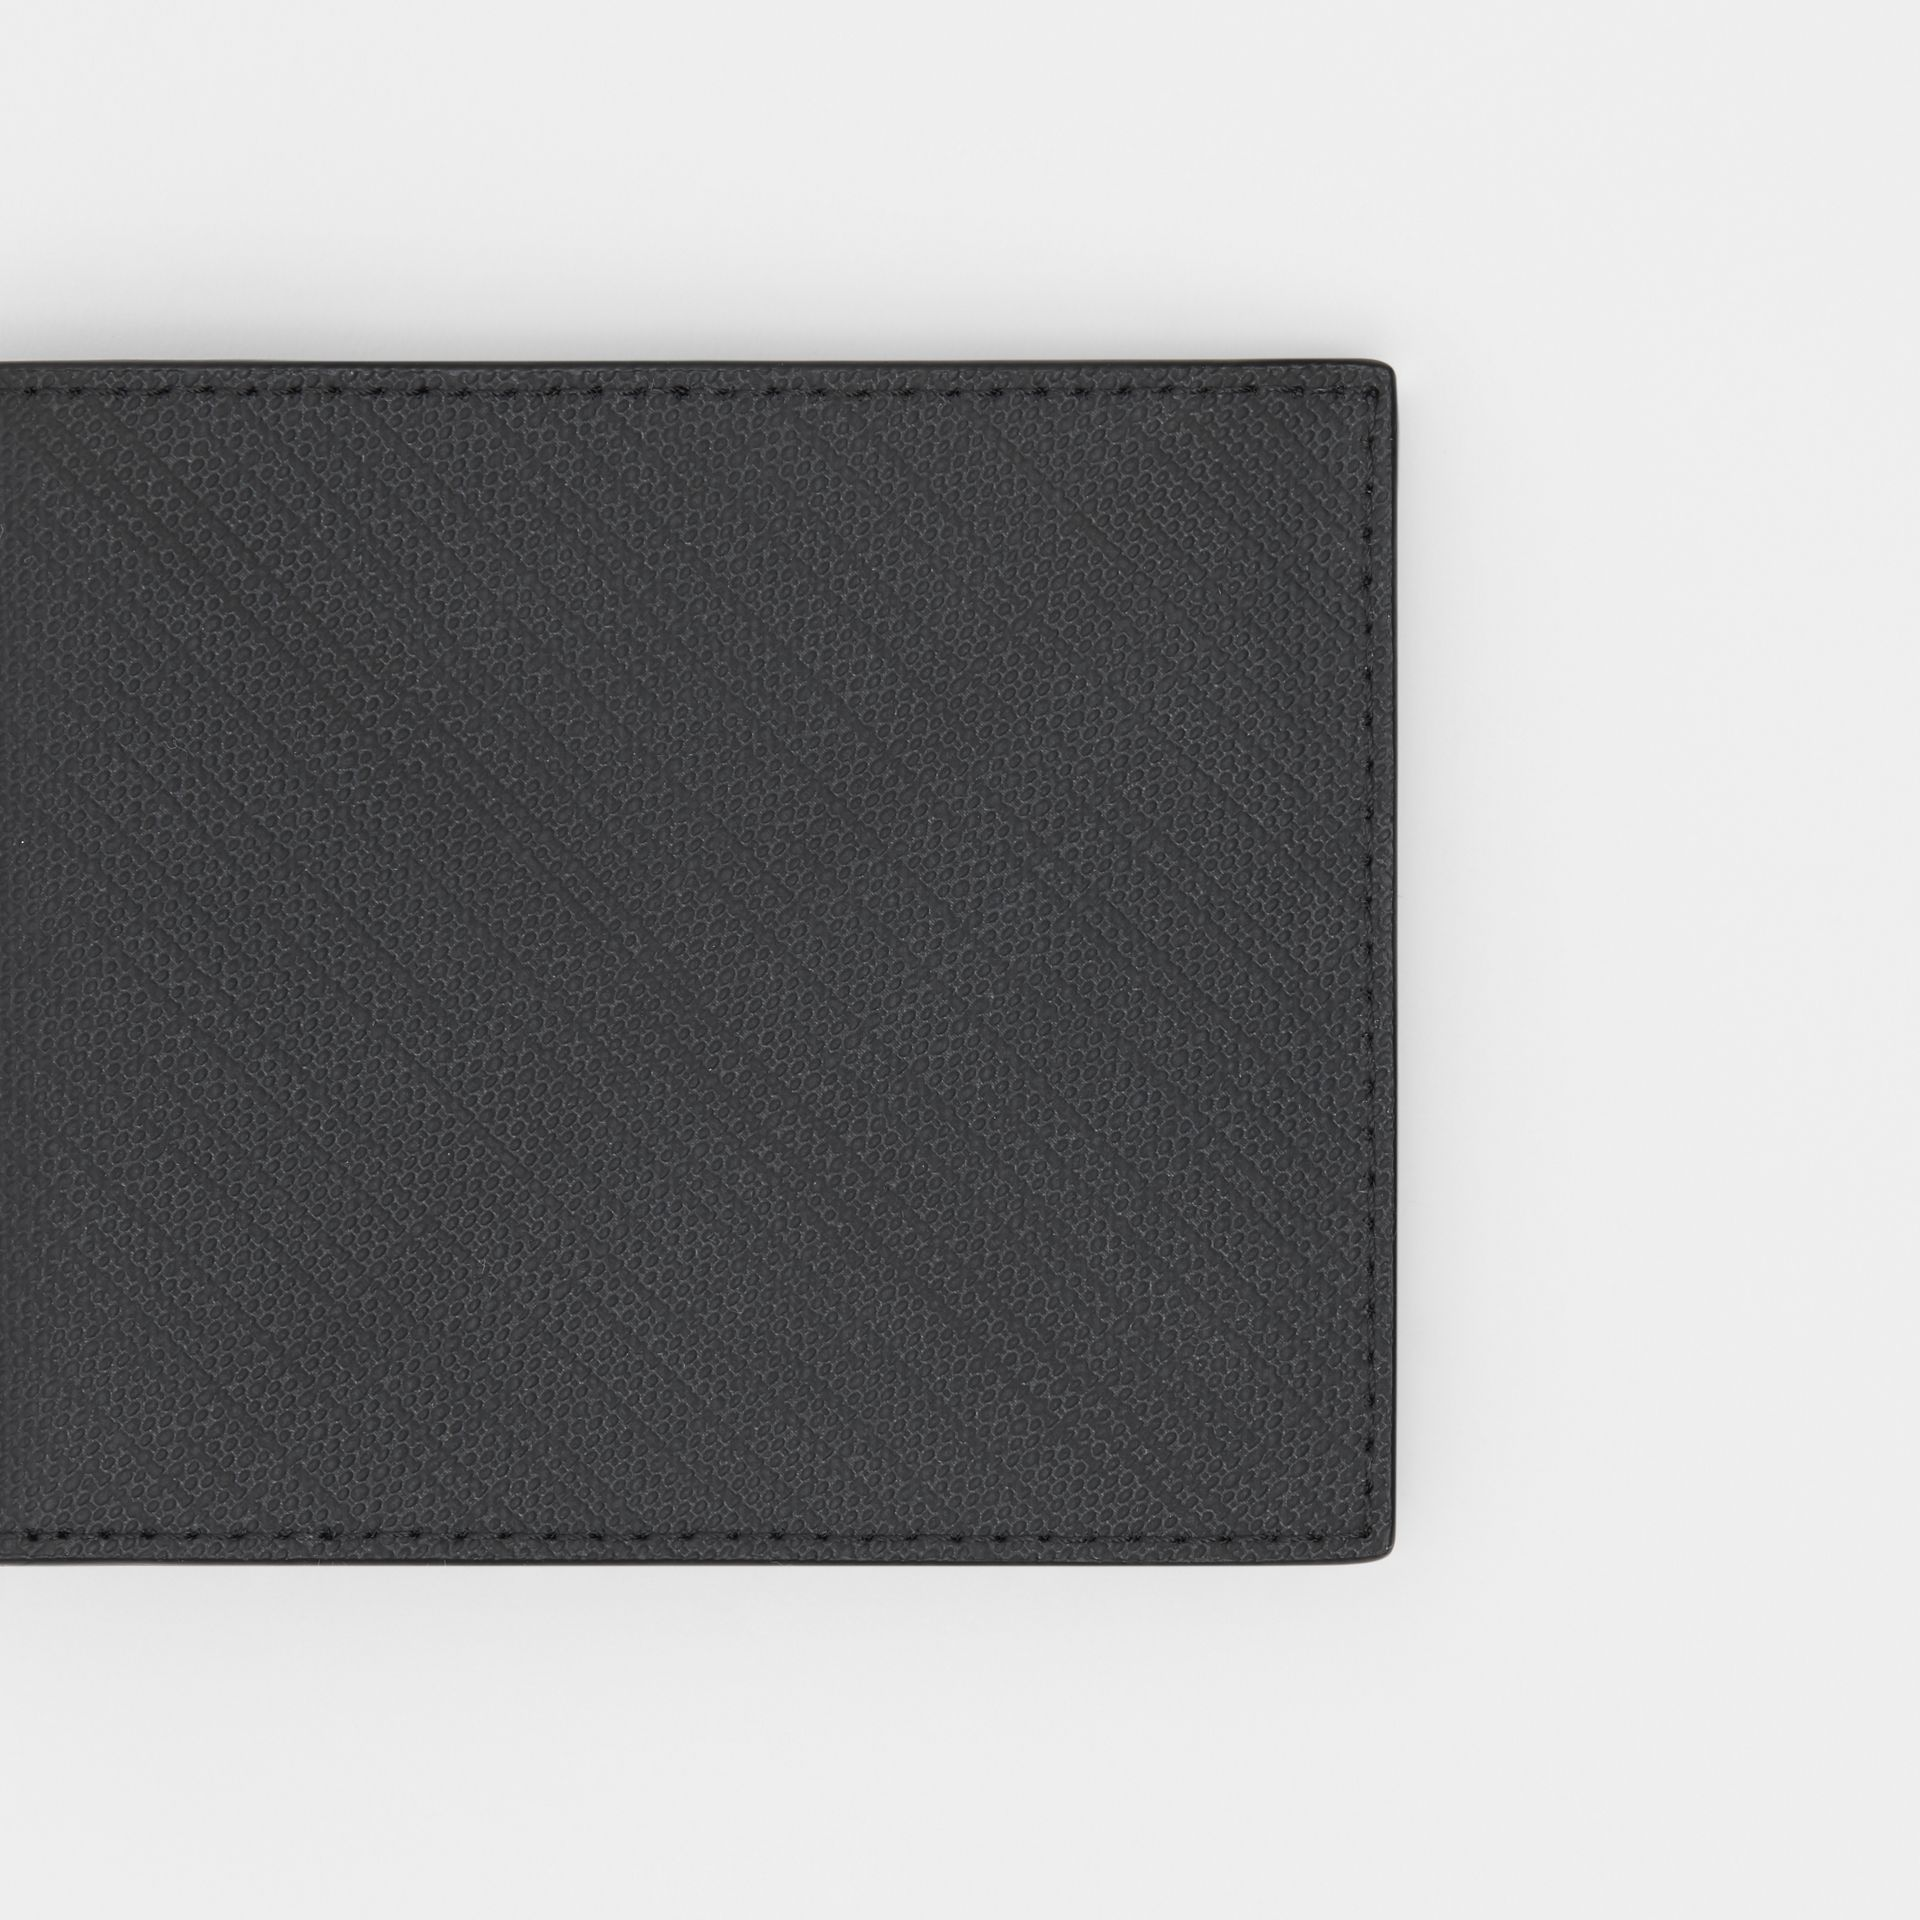 London Check and Leather Bifold Wallet in Dark Charcoal - Men | Burberry United Kingdom - gallery image 1